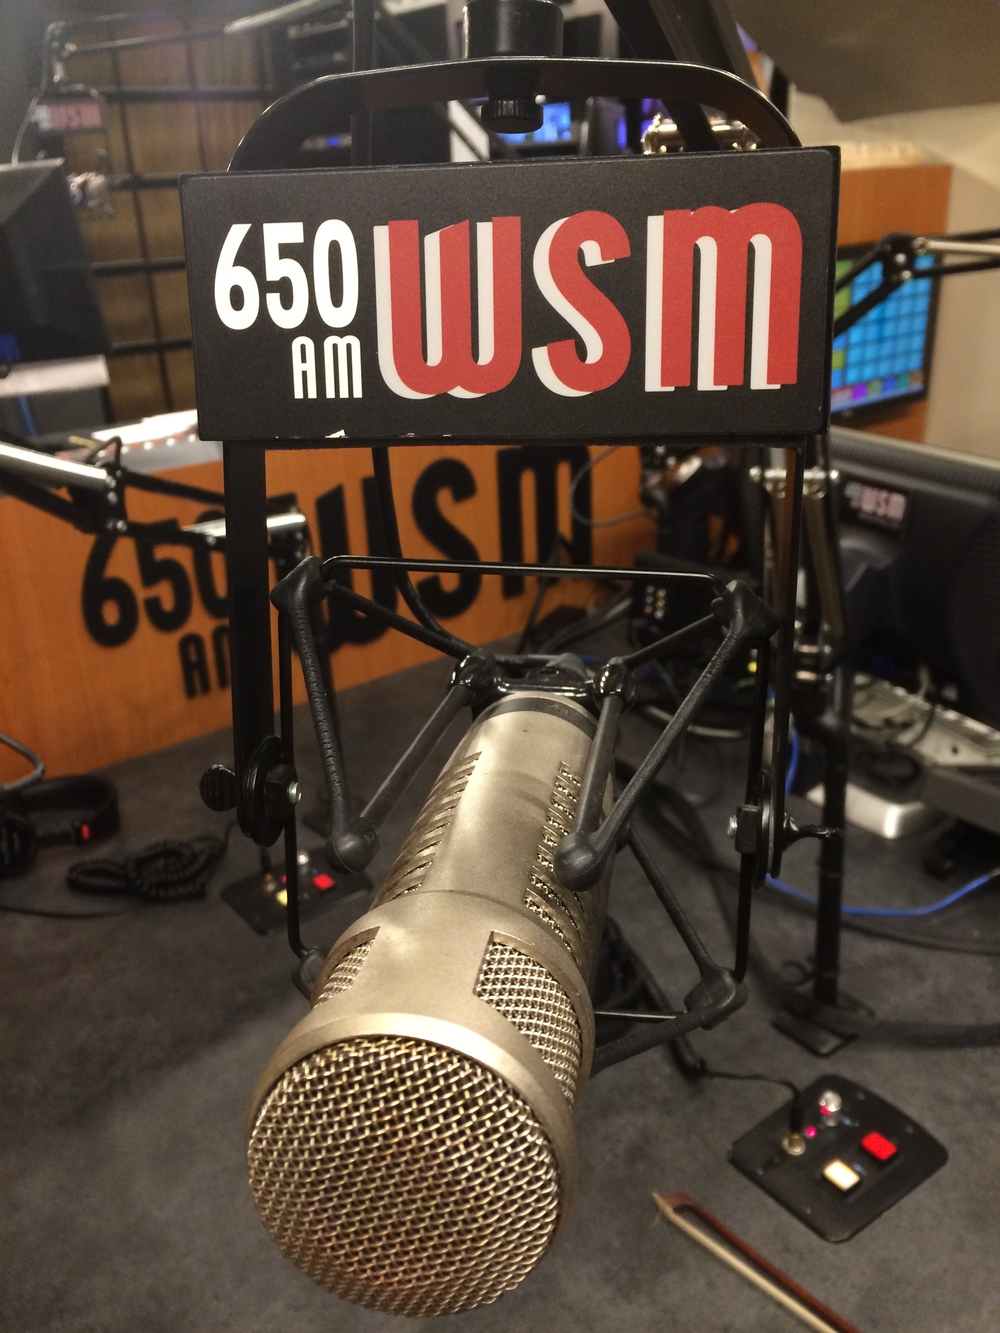 We played on the legendary WSM 650 am on May 26th!